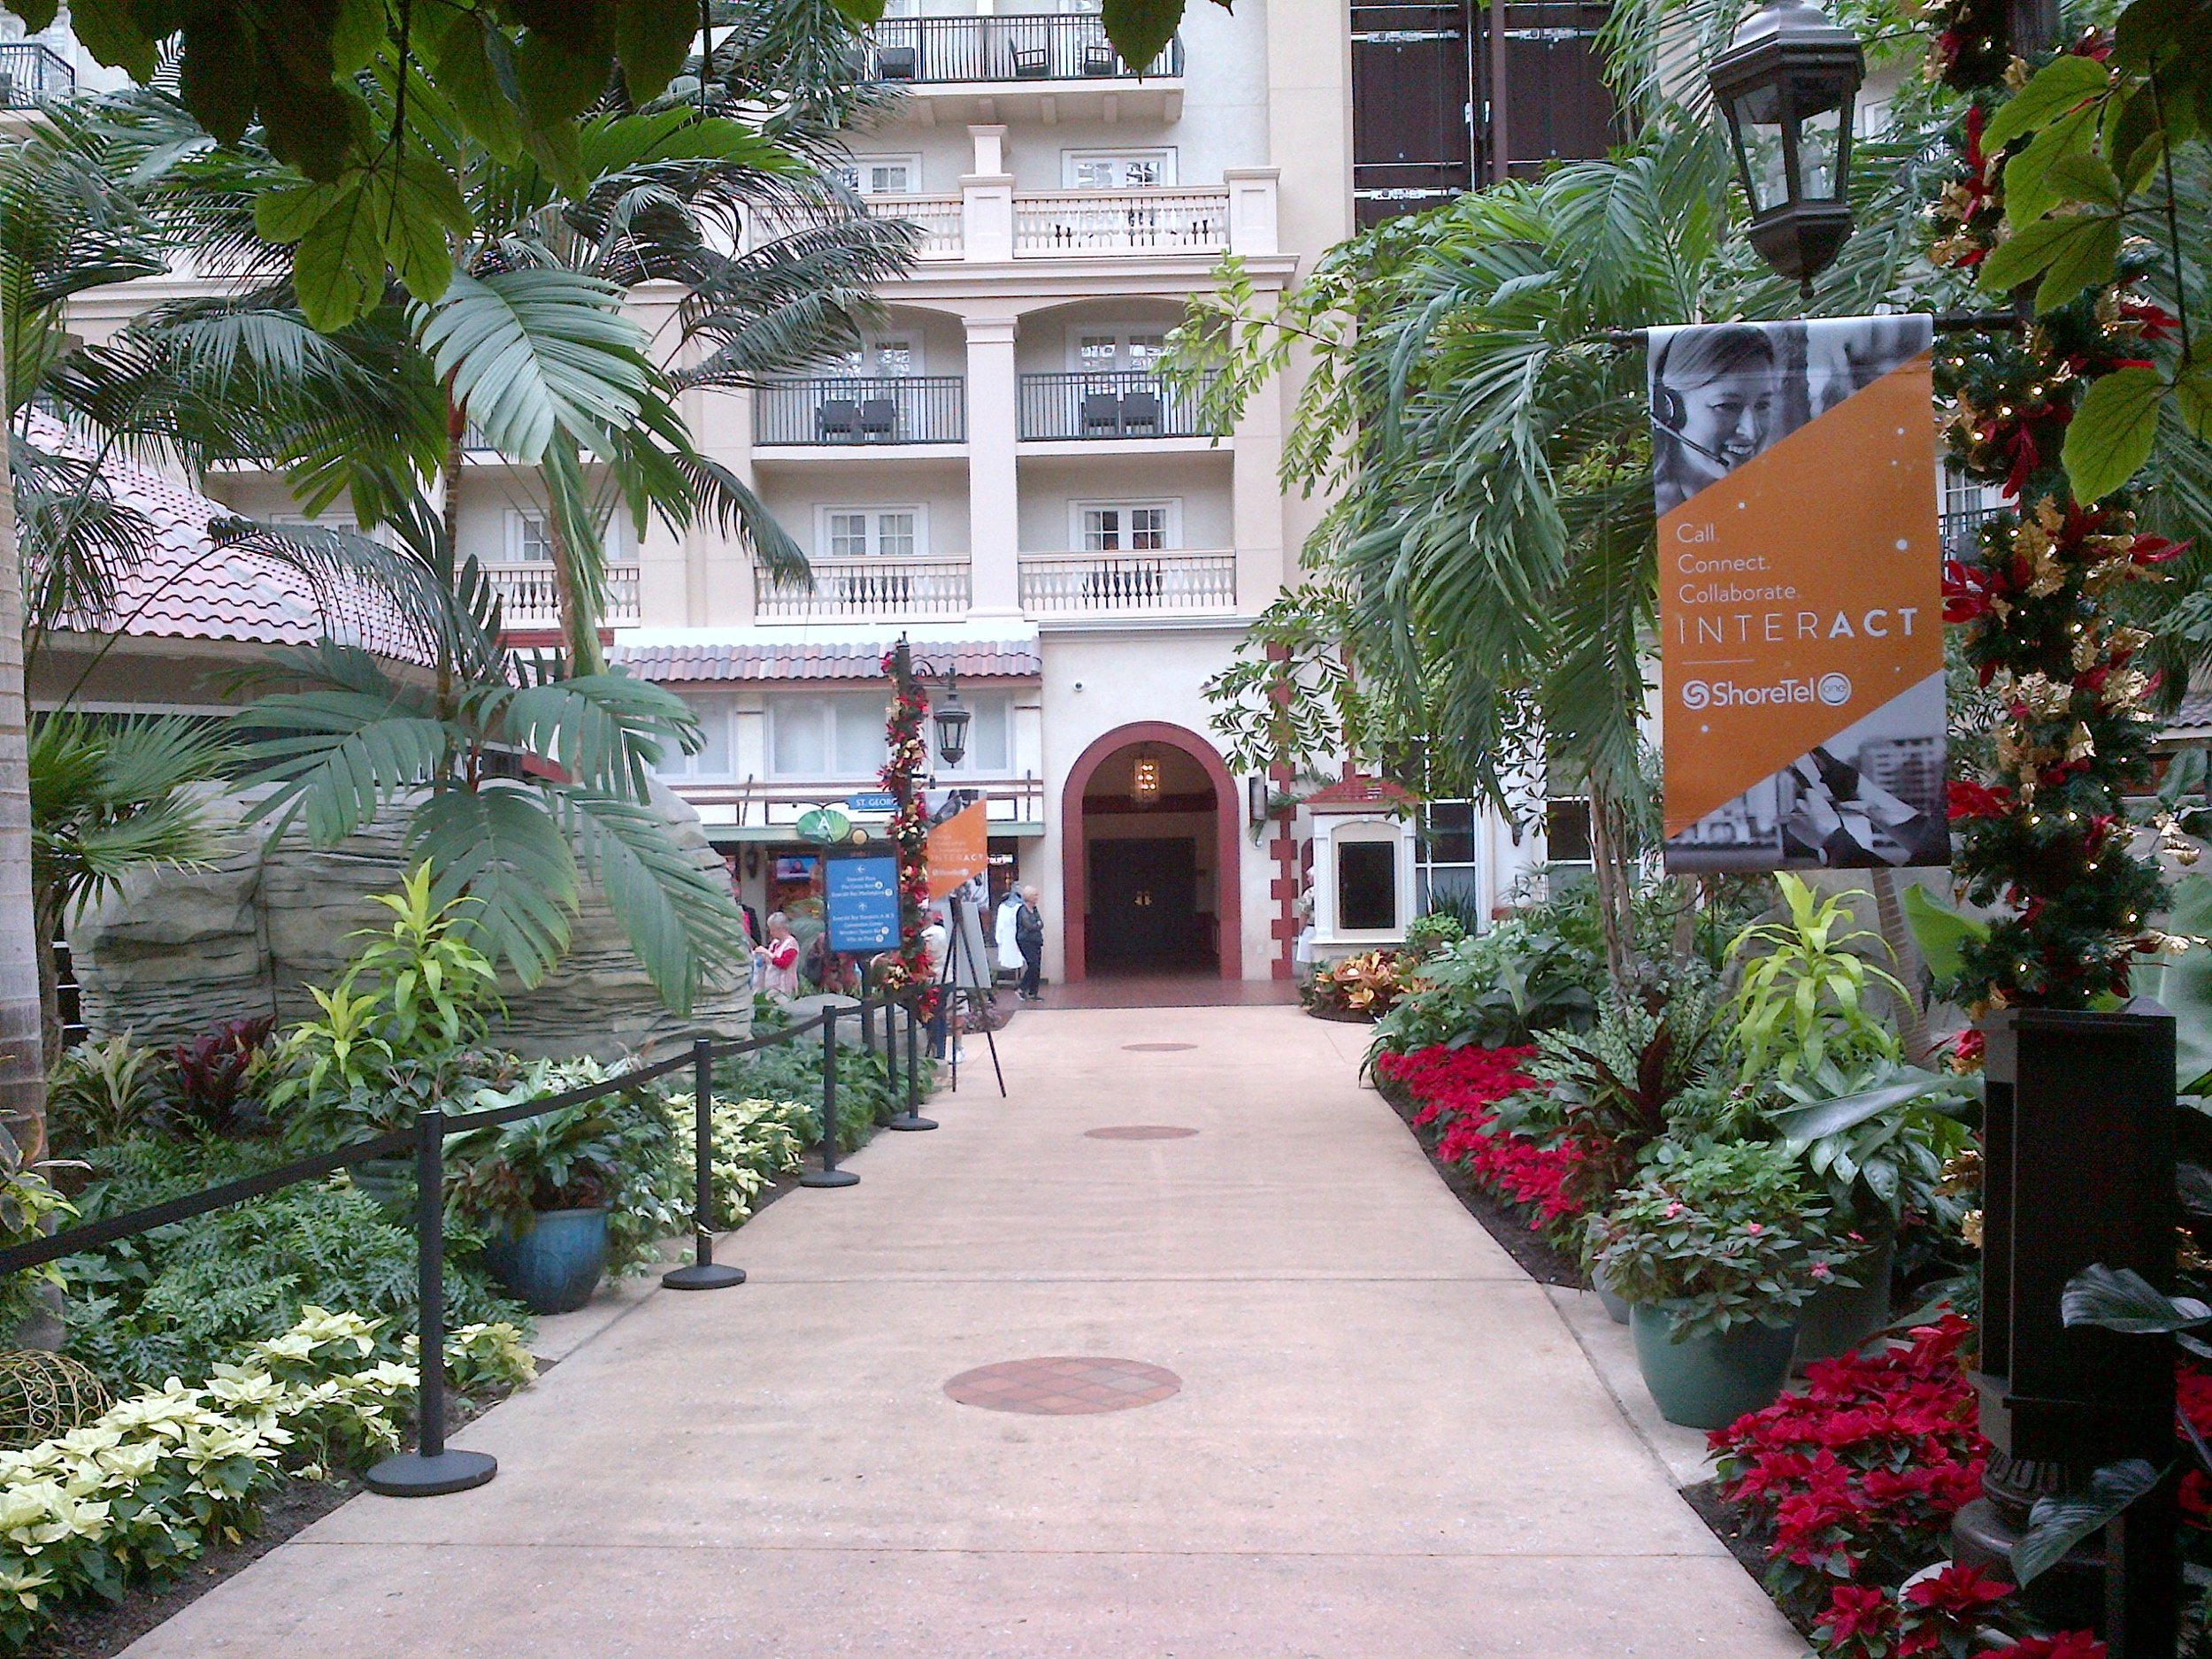 Held at the Gaylord in Orlando - very inviting walkup to the conference.